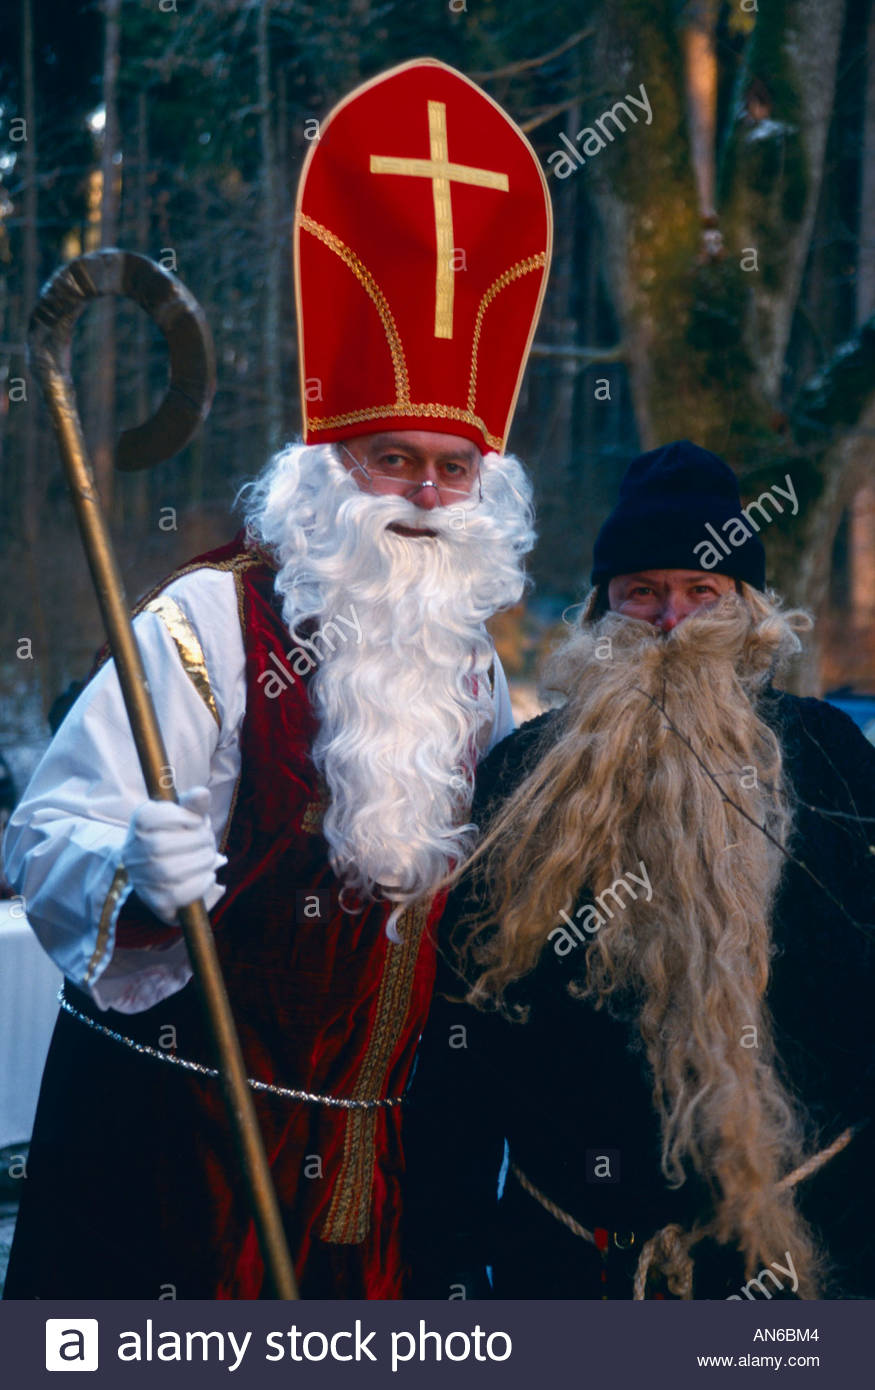 st nikolaus mit krampus santa claus with krampus bayern. Black Bedroom Furniture Sets. Home Design Ideas